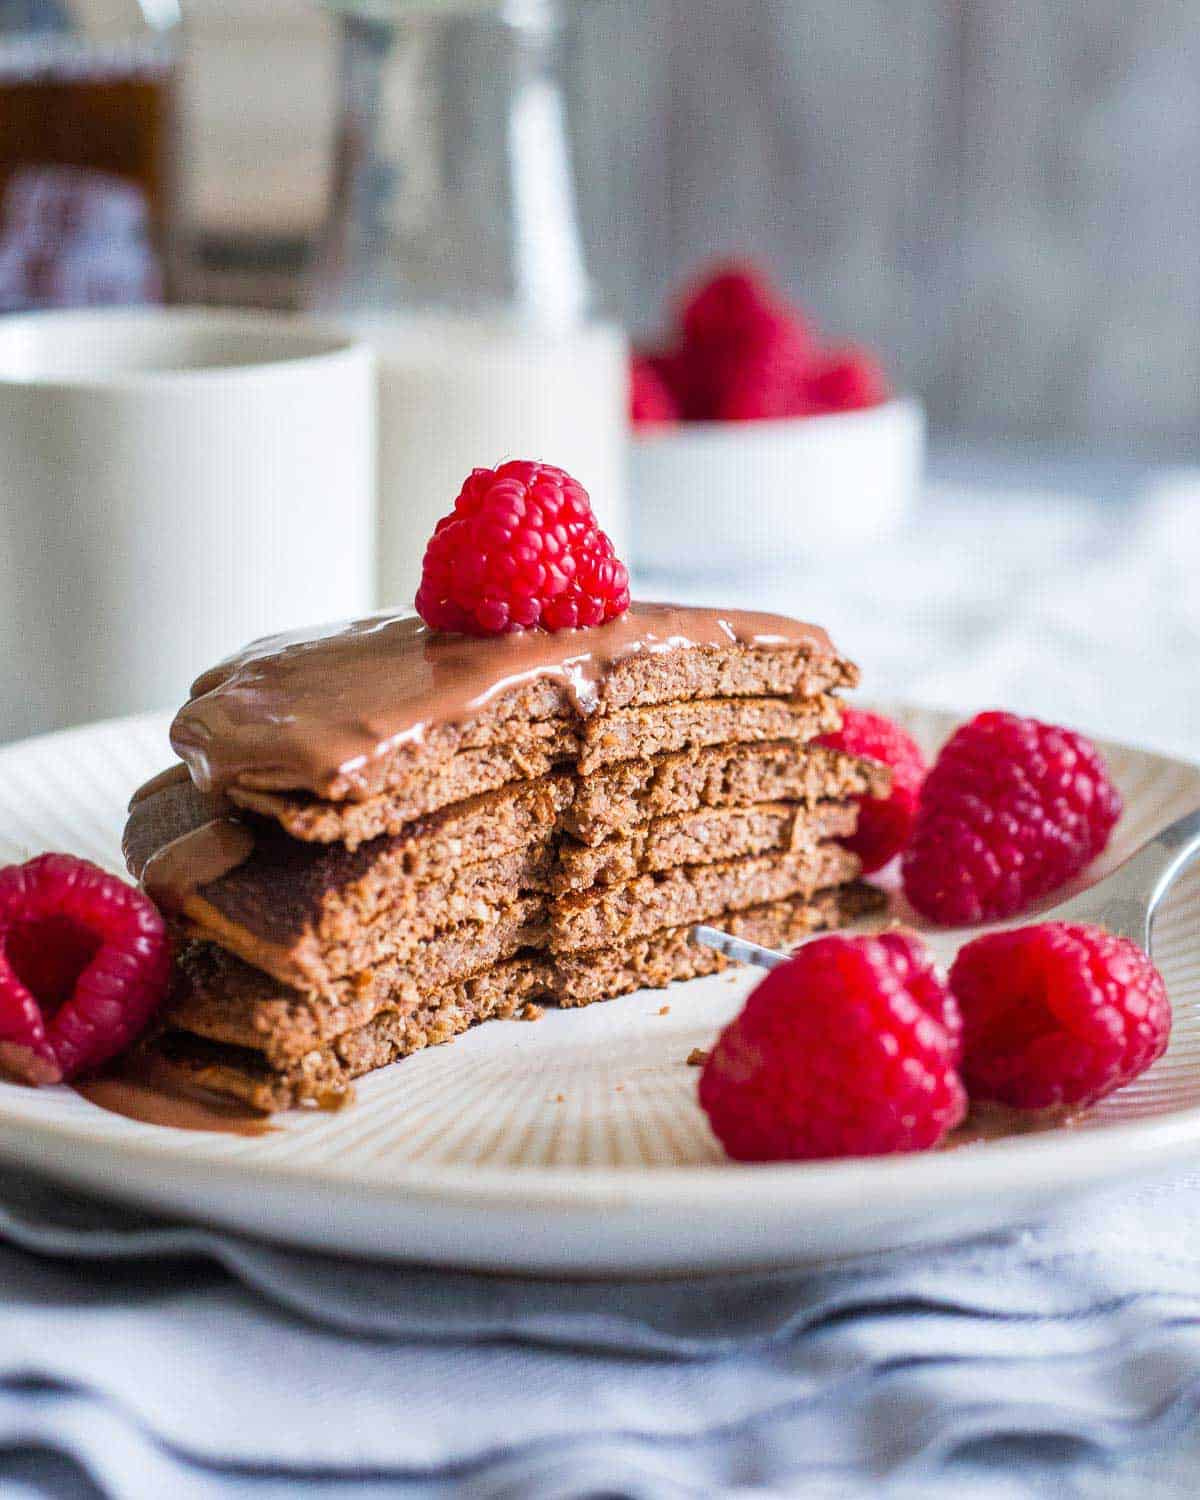 Full of chocolate flavor and with a delicious chocolate sauce on top, these protein pancakes taste more like dessert than a healthy breakfast!